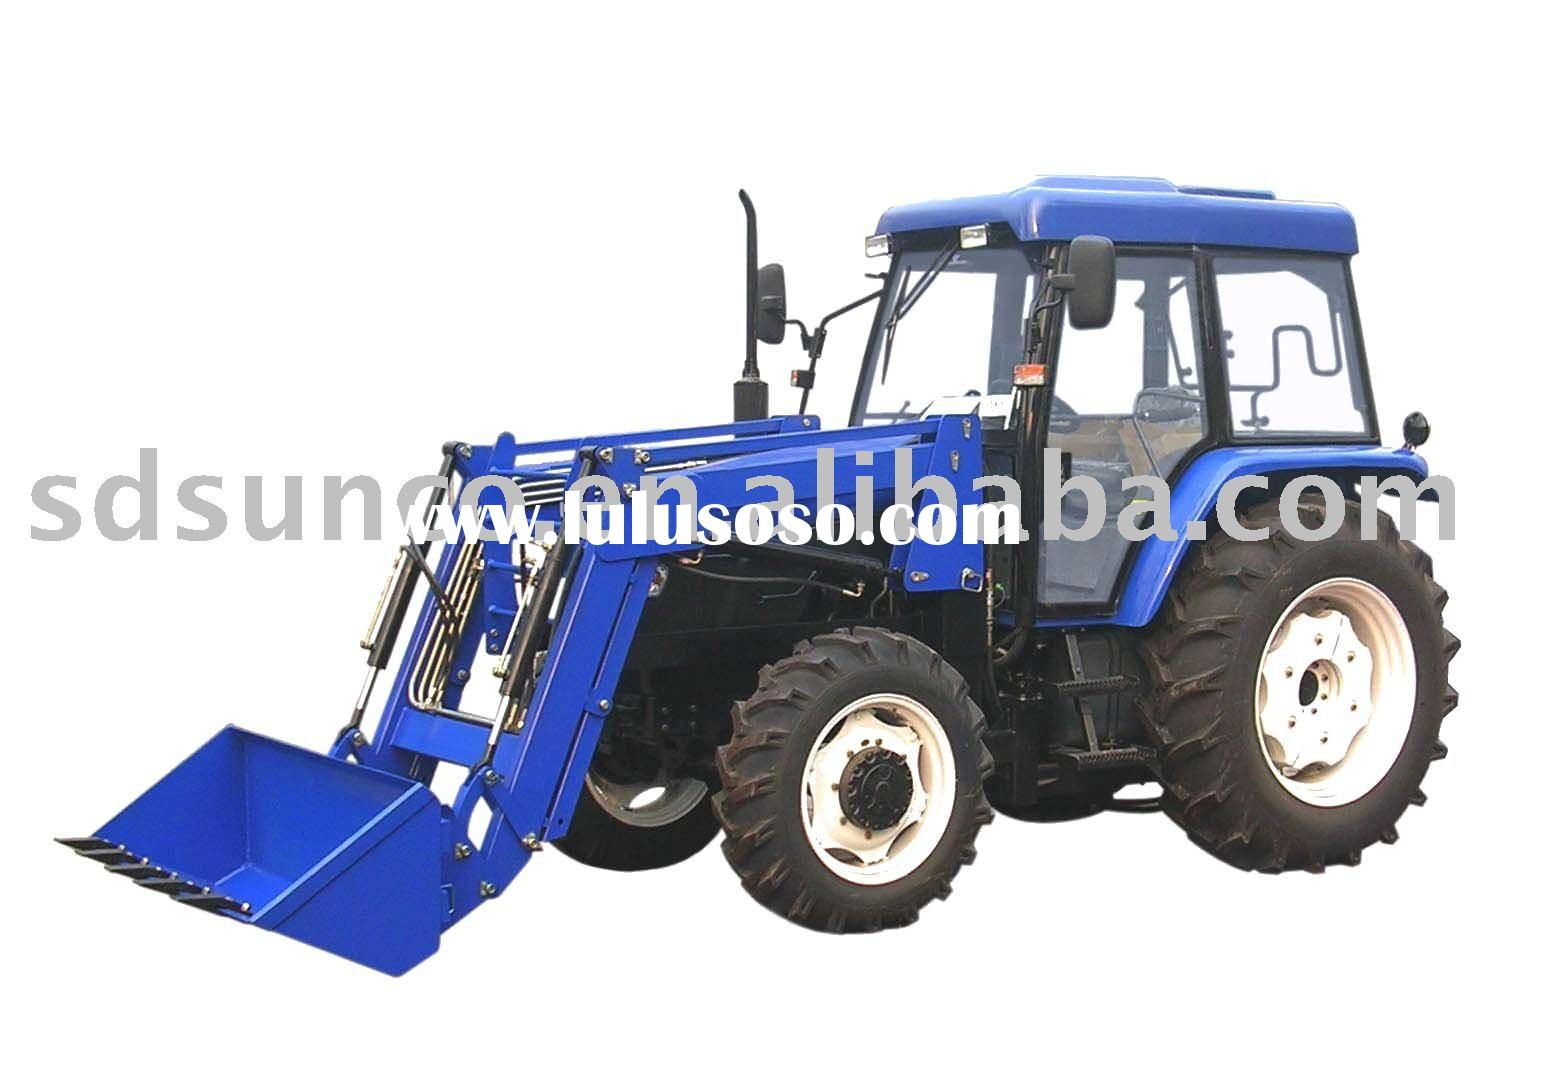 Front end loader,loader,mini loader, farm tractor bucket,mini tractors,tractor front end loader,part